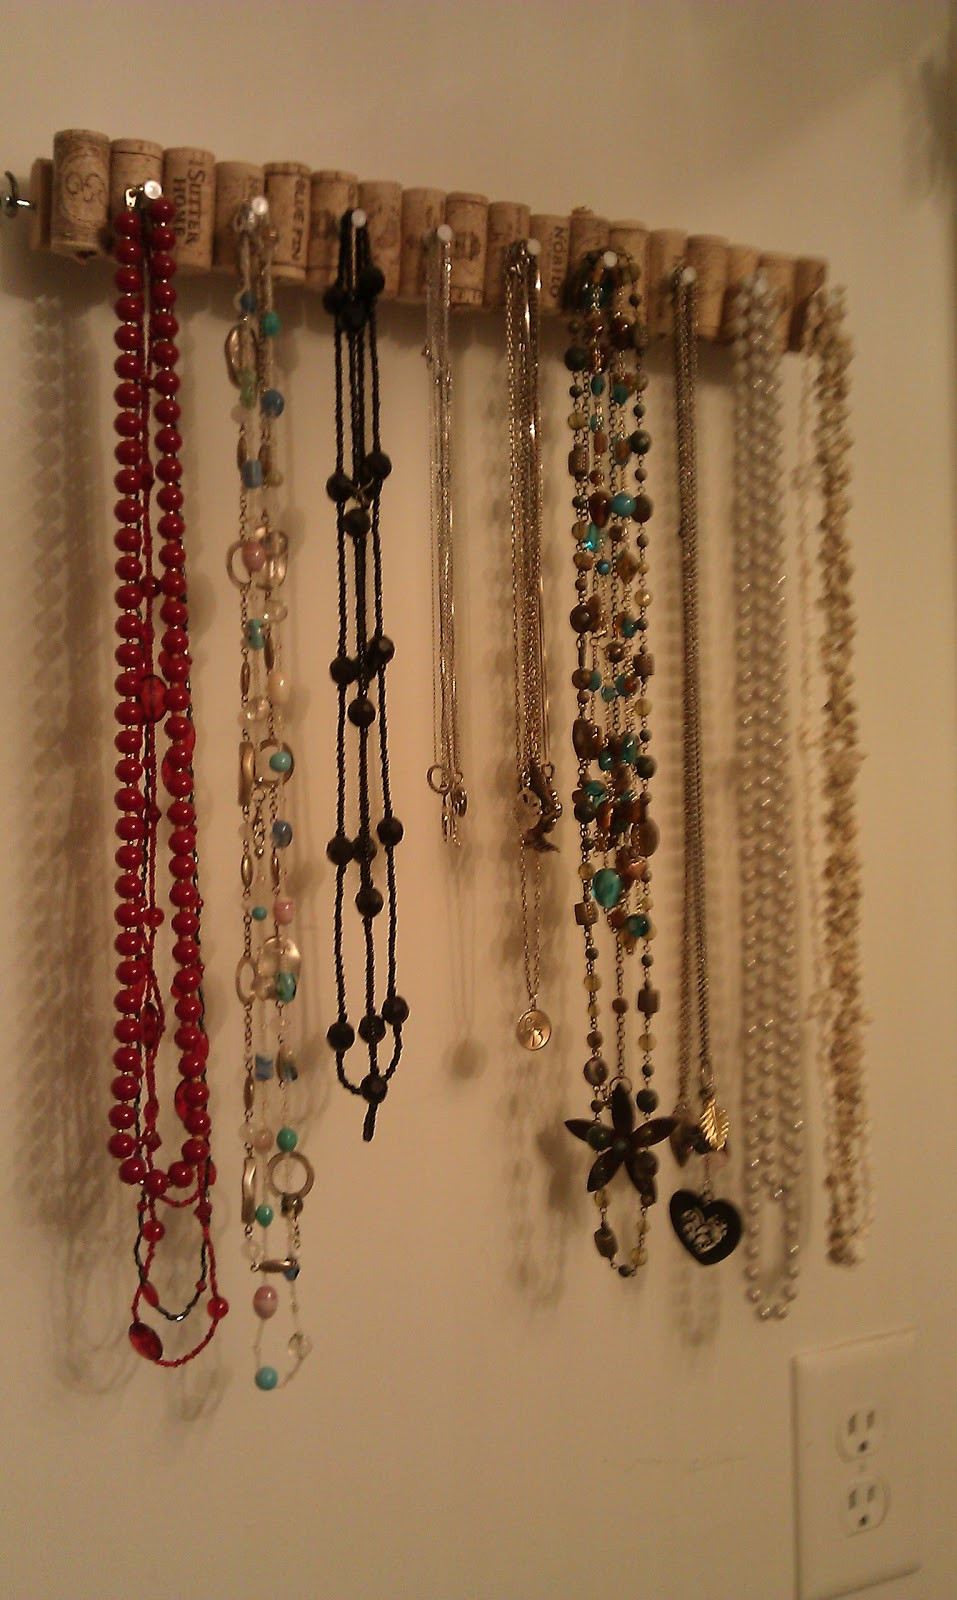 Best ideas about DIY Necklace Holder . Save or Pin The Wannabe Hippie DIY Necklace holder Now.